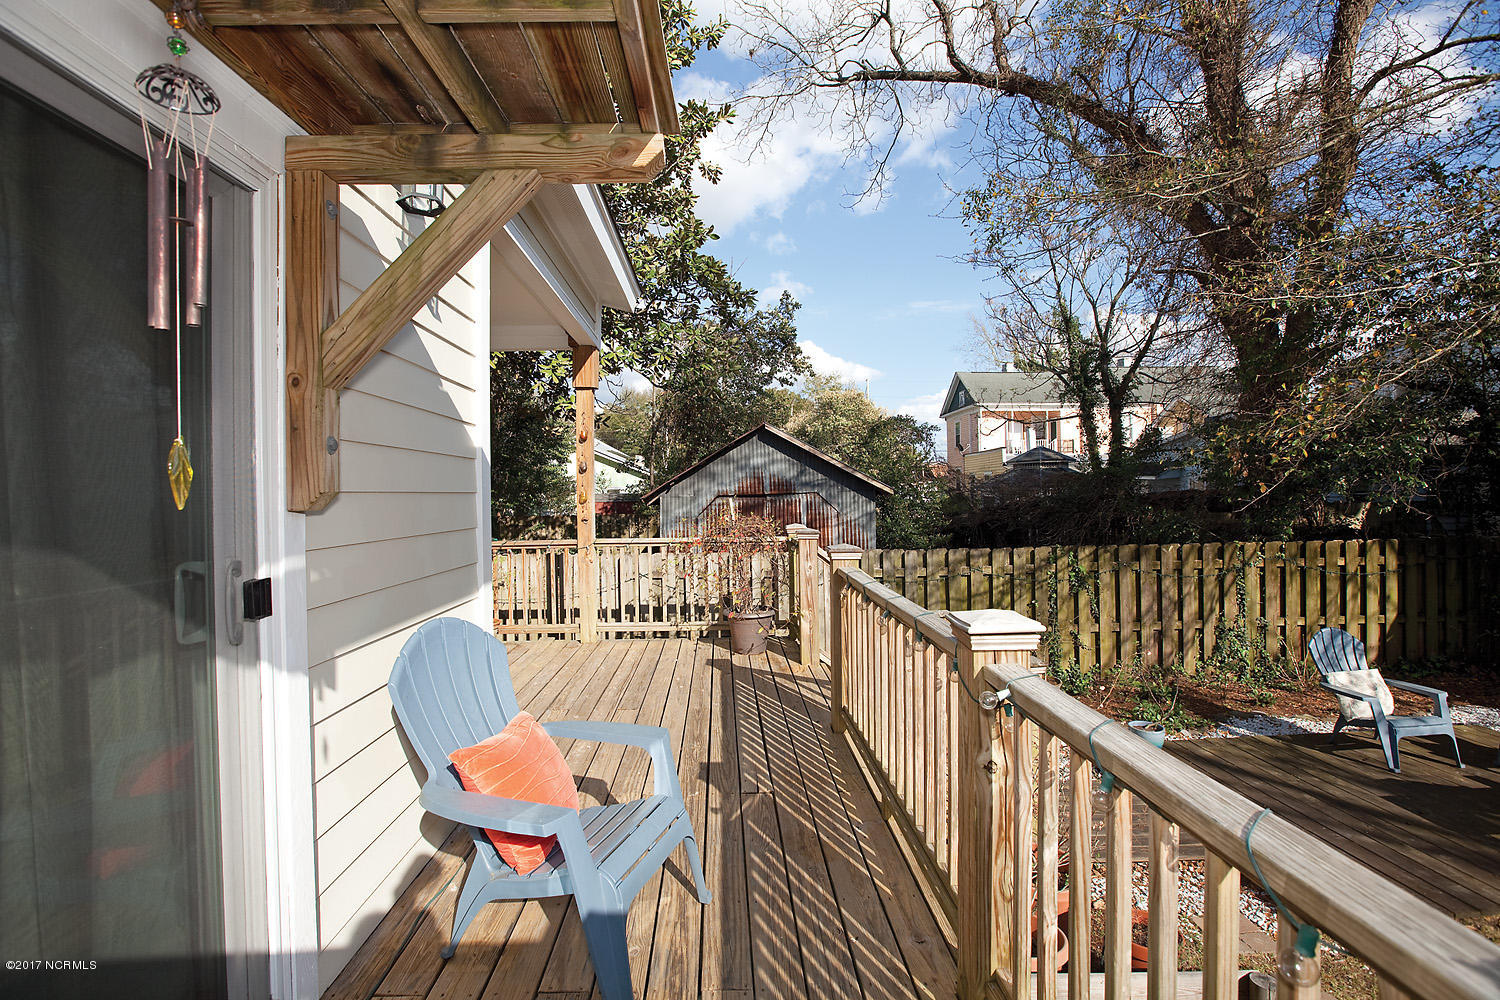 820 Macumber Alley, Wilmington, North Carolina 28401, 3 Bedrooms Bedrooms, 6 Rooms Rooms,3 BathroomsBathrooms,Residential,For Sale,Macumber,100051889